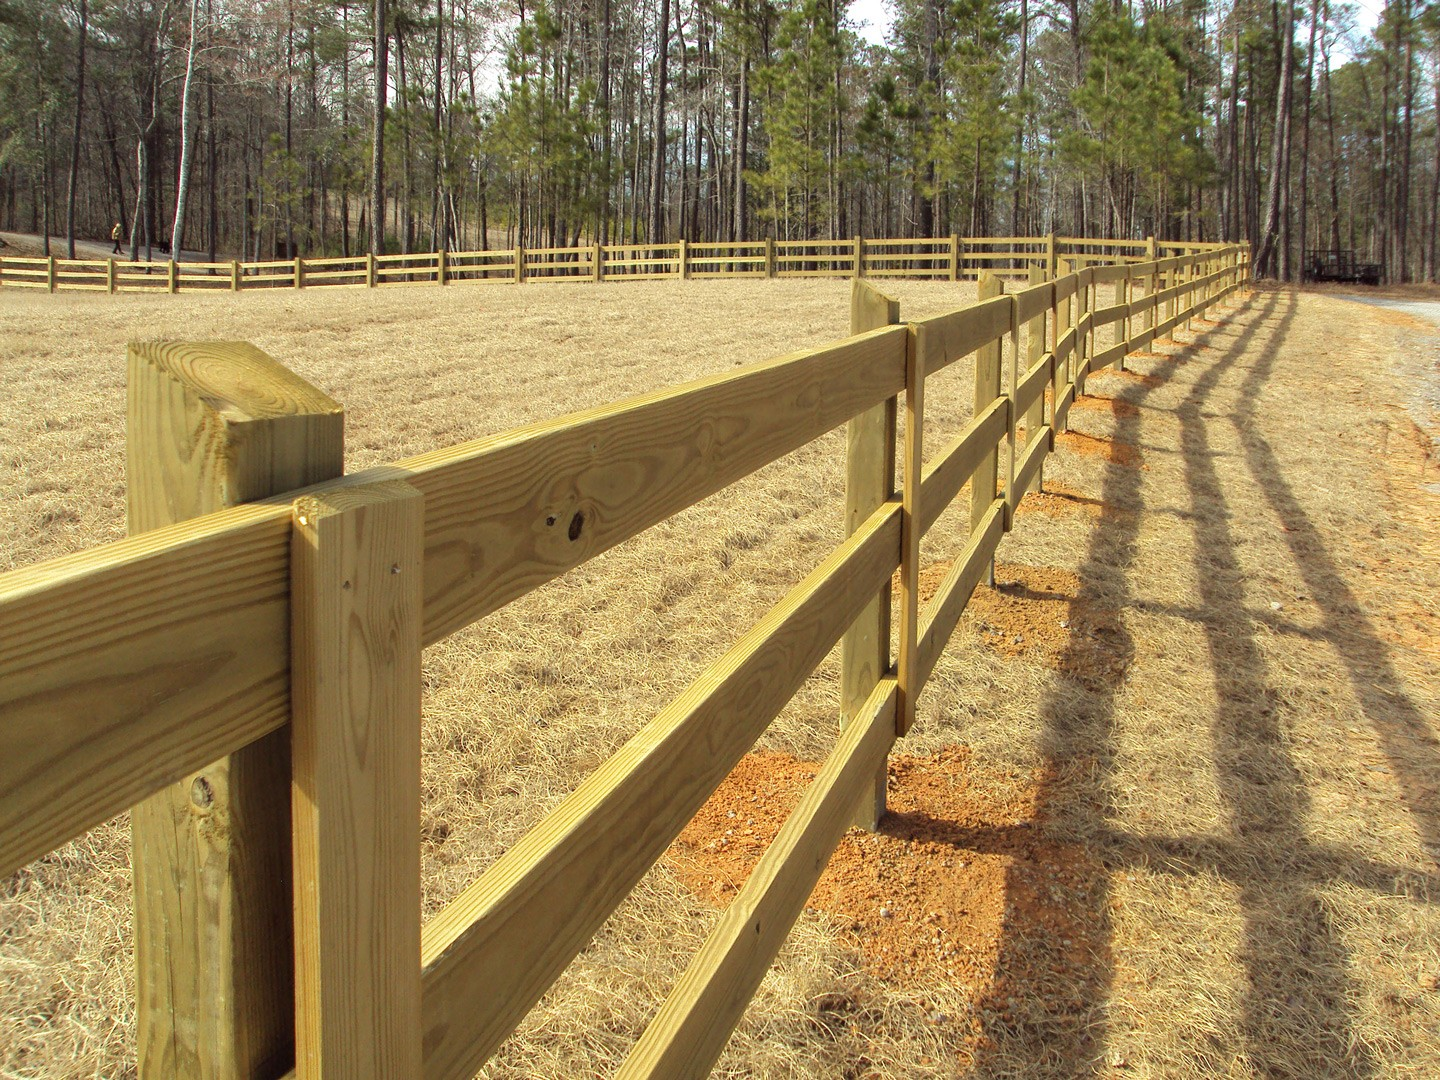 Diy fencing materials anniston al the fence place wood fence for ranch baanklon Gallery